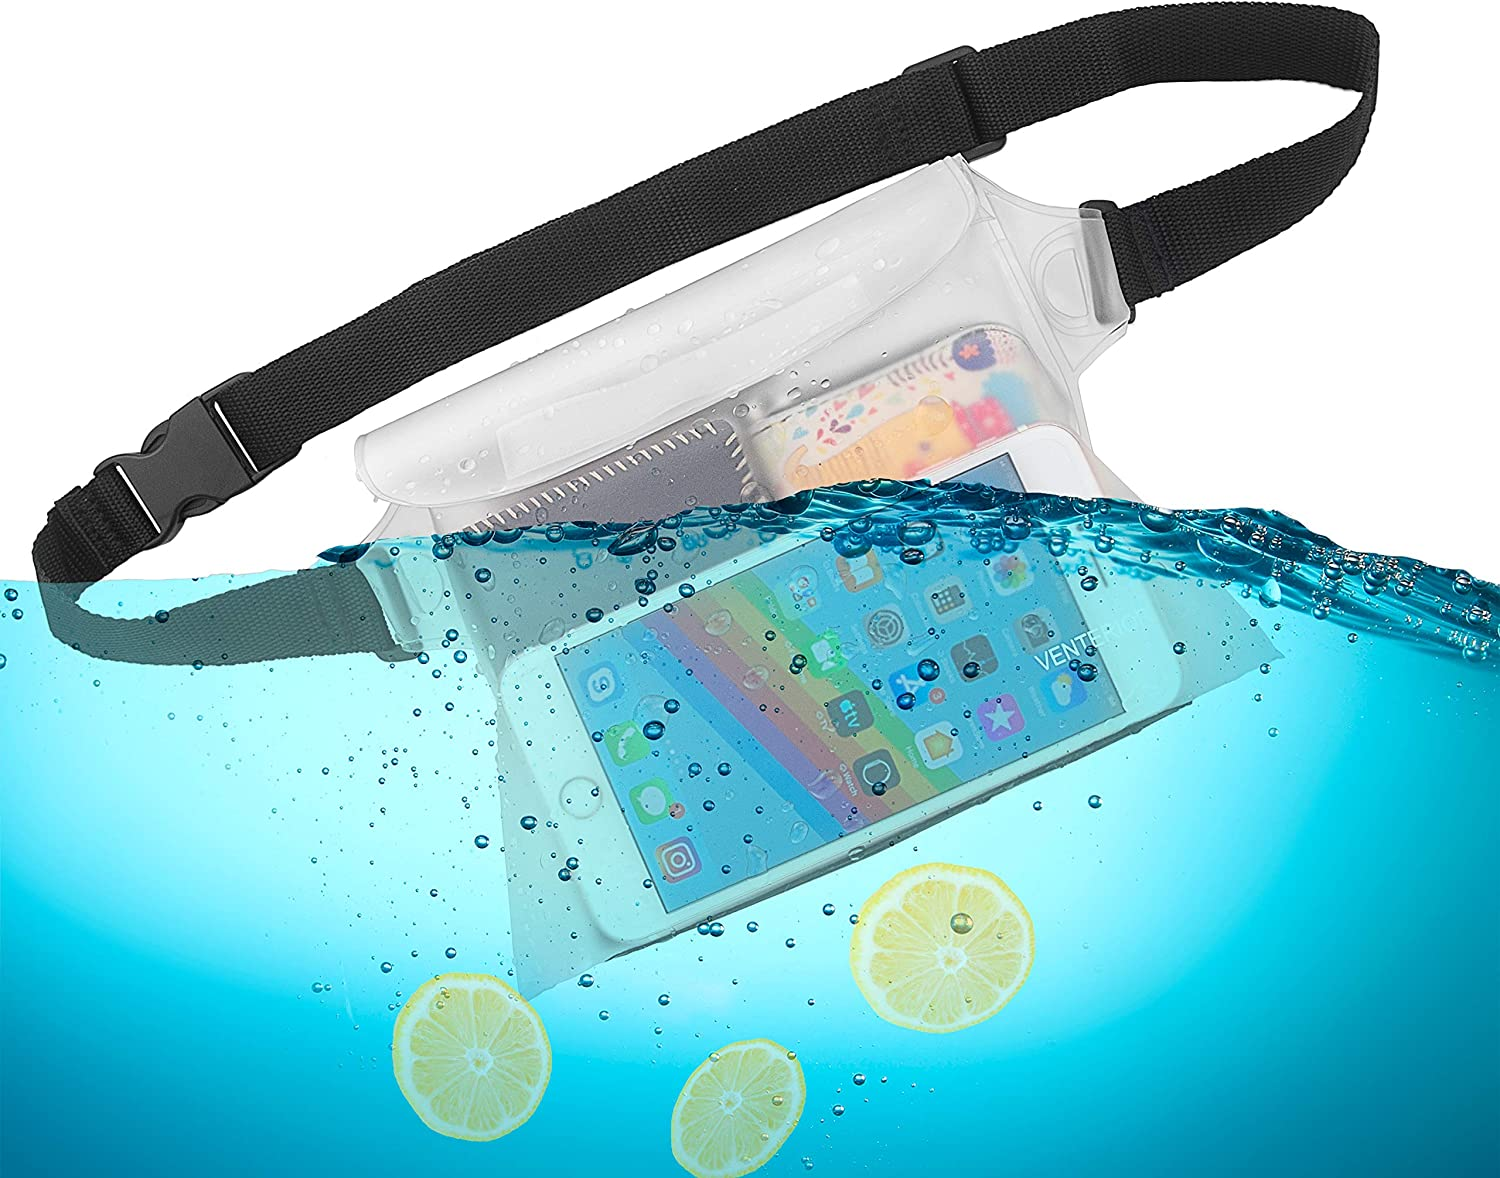 Keep Your Phone Wallet License Safe and Dry Venterior Waterproof Pouch 2 Pack with Adjustable Waist Strap Perfect Dry Bag for Swimming Snorkeling Boating Sailing Water Parks